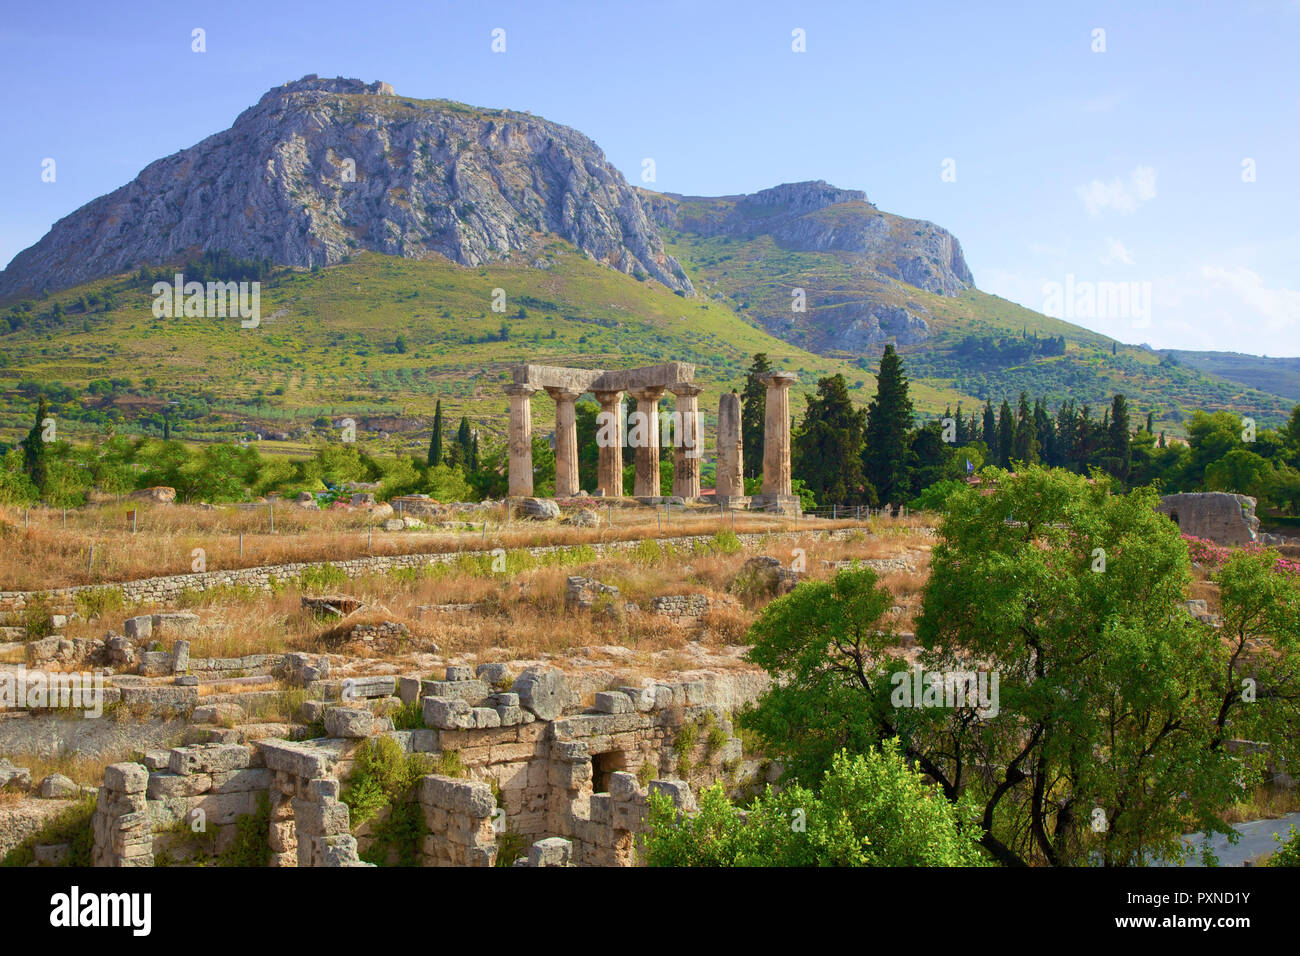 Temple of Apollo, Corinth, The Peloponnese, Greece, Southern Europe - Stock Image